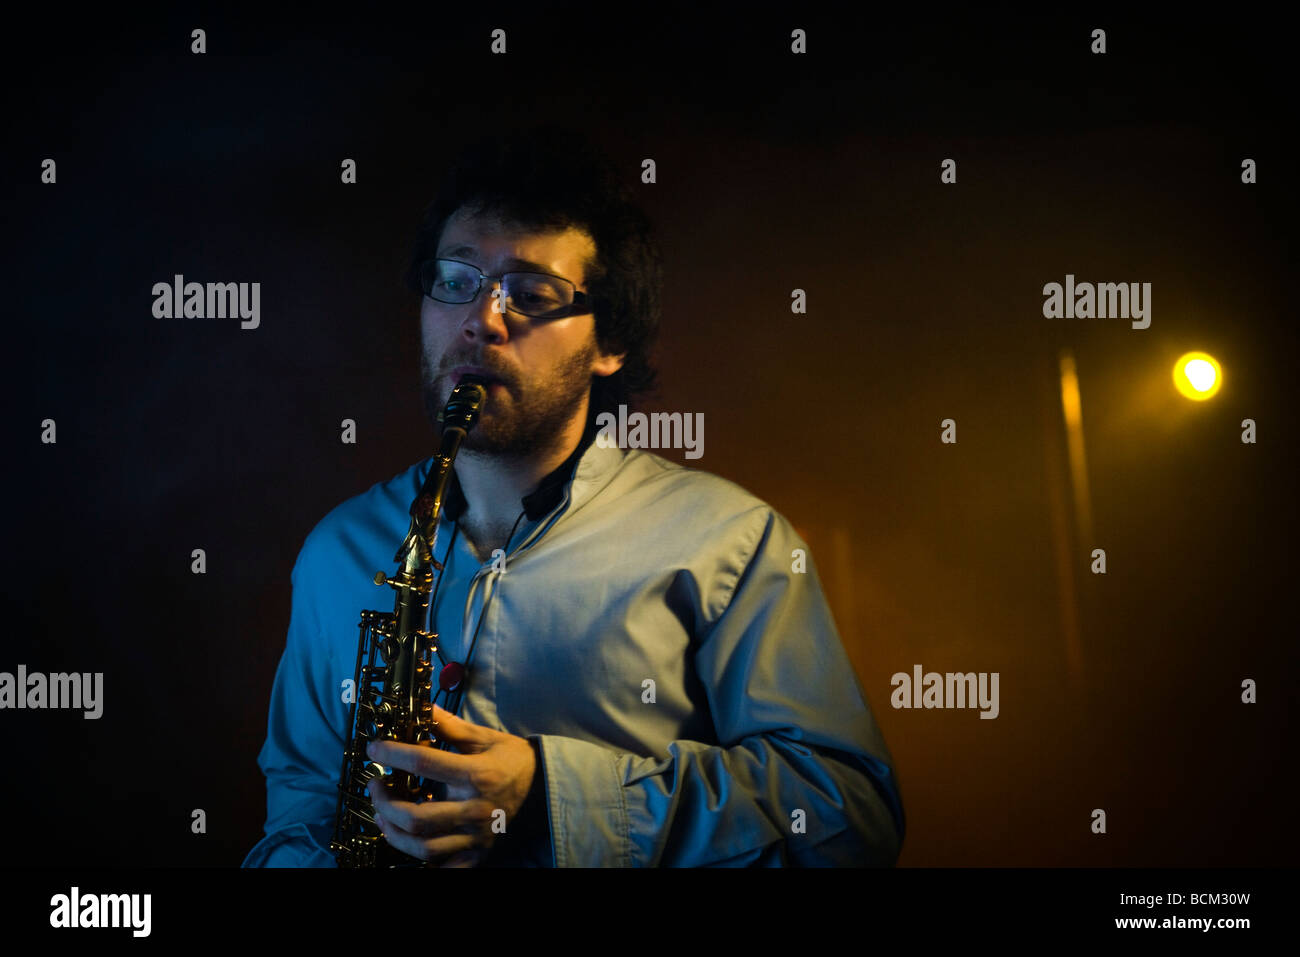 Man playing saxophone dans night club Photo Stock